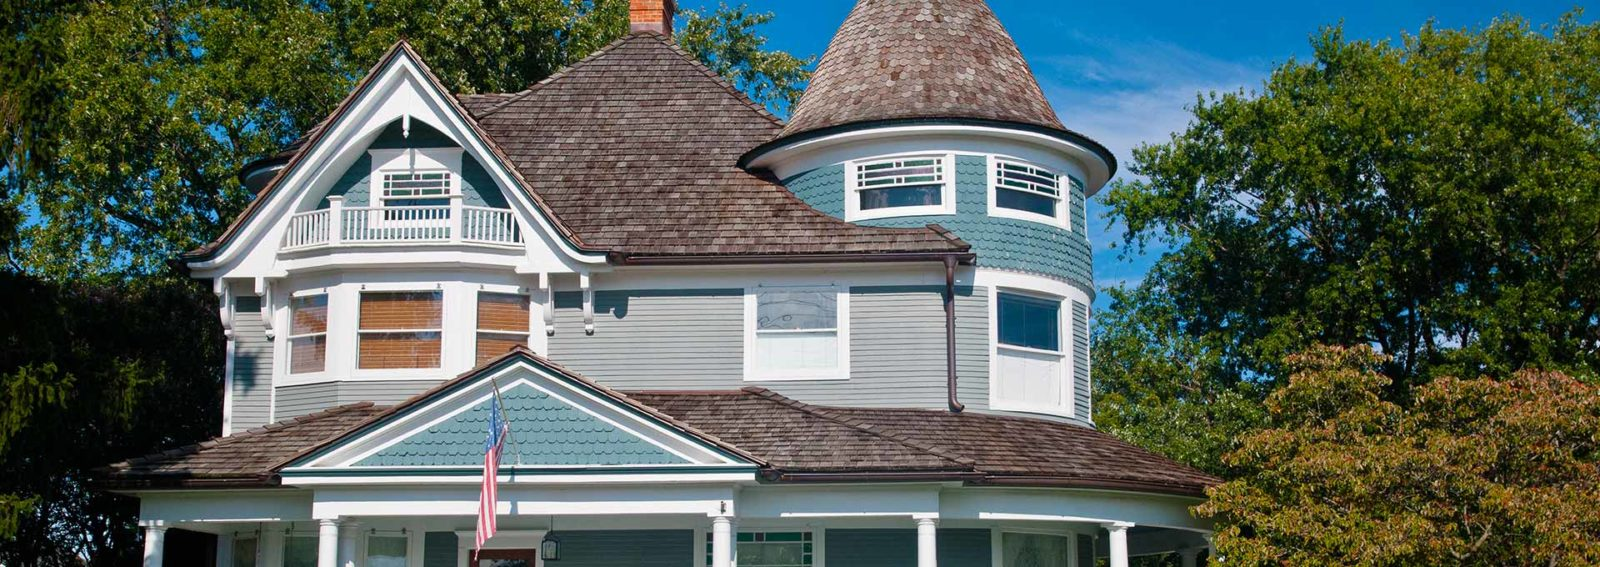 Homeowners Insurance in Quincy MA, Alton NH, Laconia, Braintree, Weymouth